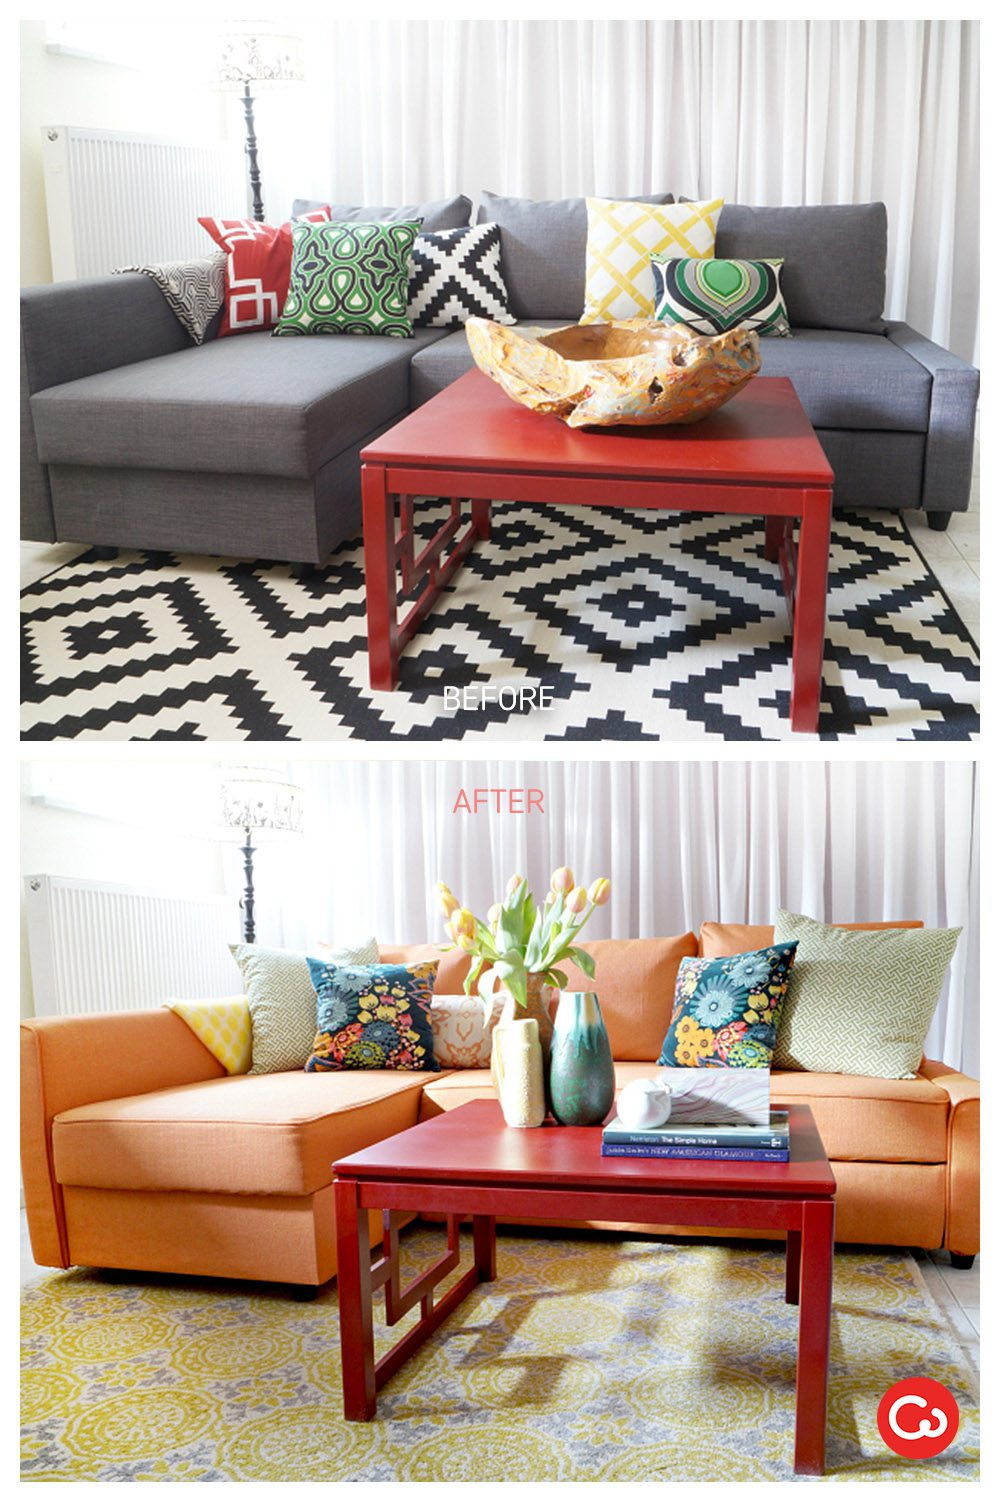 Comfort Works Custom Friheten Slipcover Before & After in Kino Orange